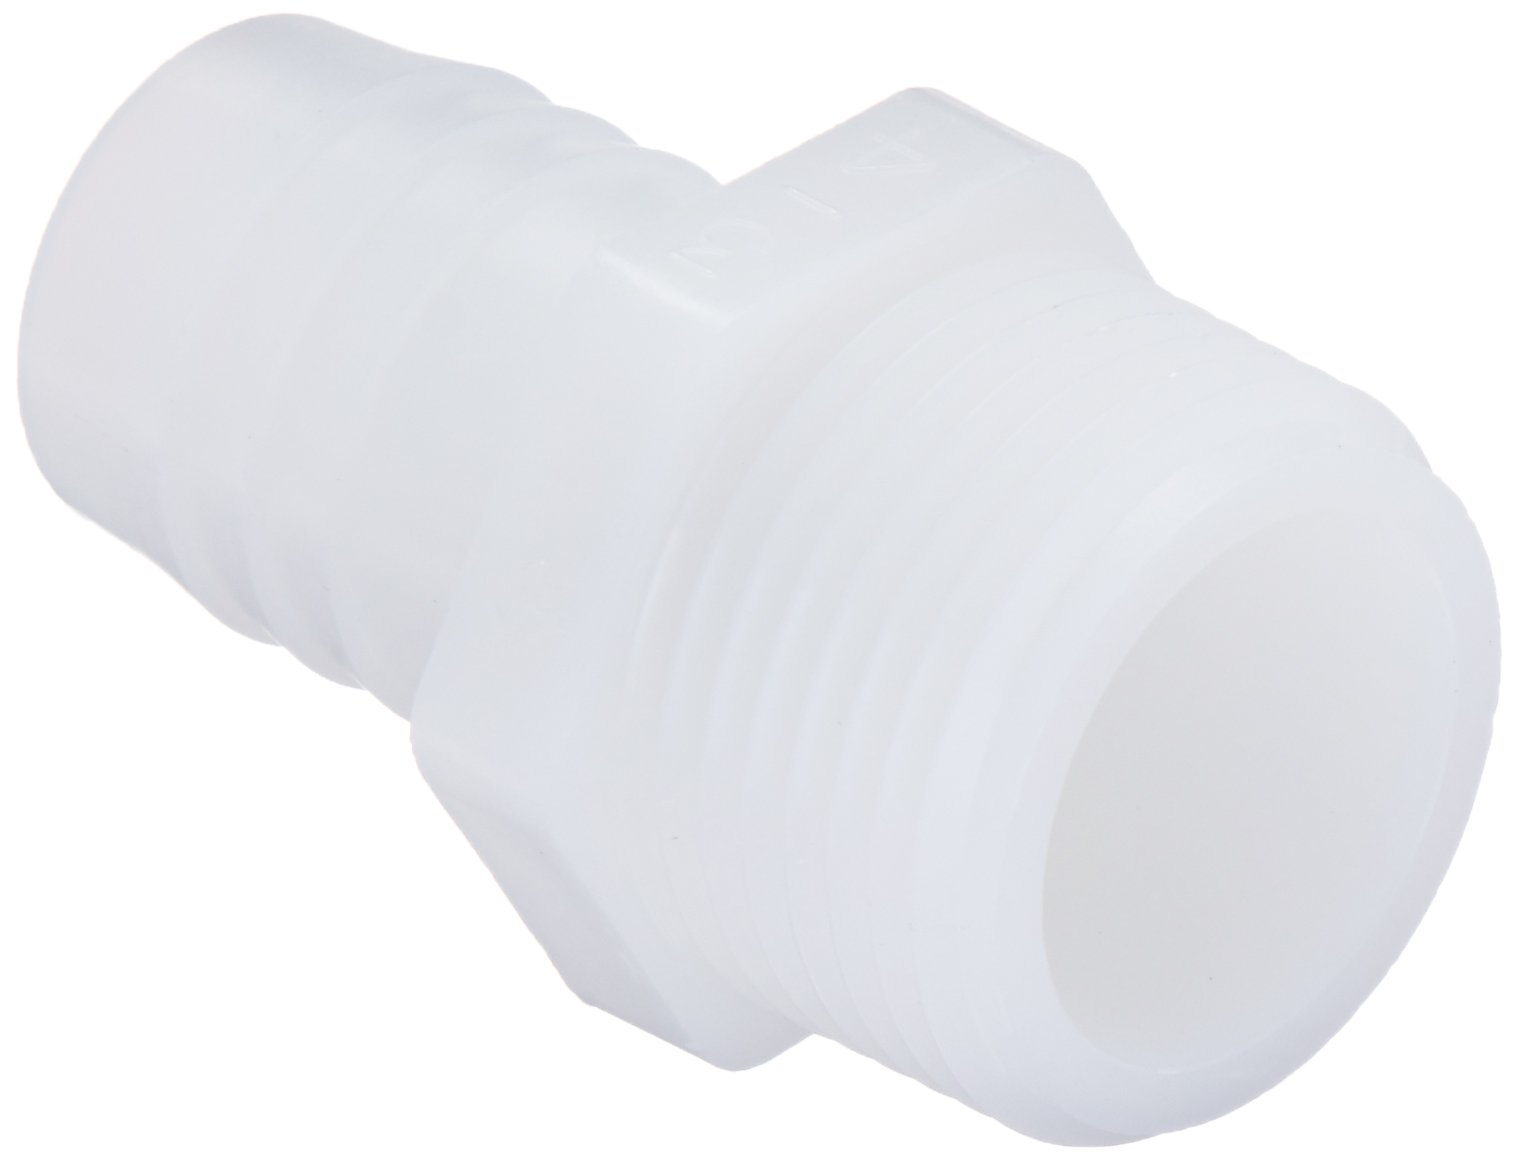 Parker Hannifin 325HB-12-12N-pk10 Par-Barb Male Connector Fitting, Nylon, 3/4'' Hose Barb x 3/4'' Male NPT, White (Pack of 10)